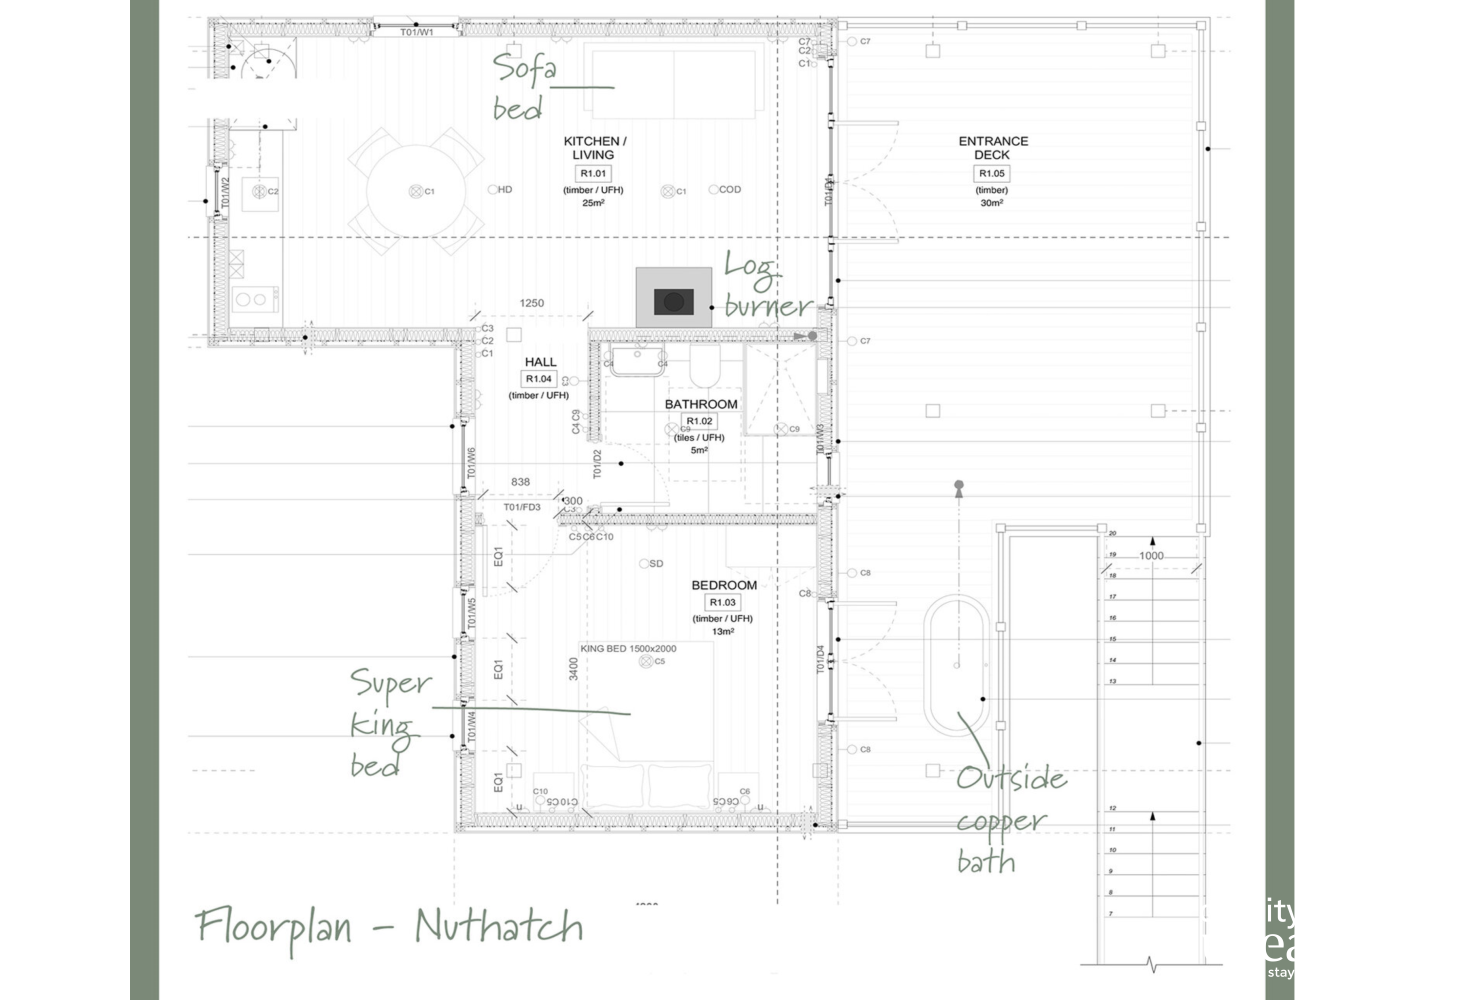 Floorplan Nuthatch